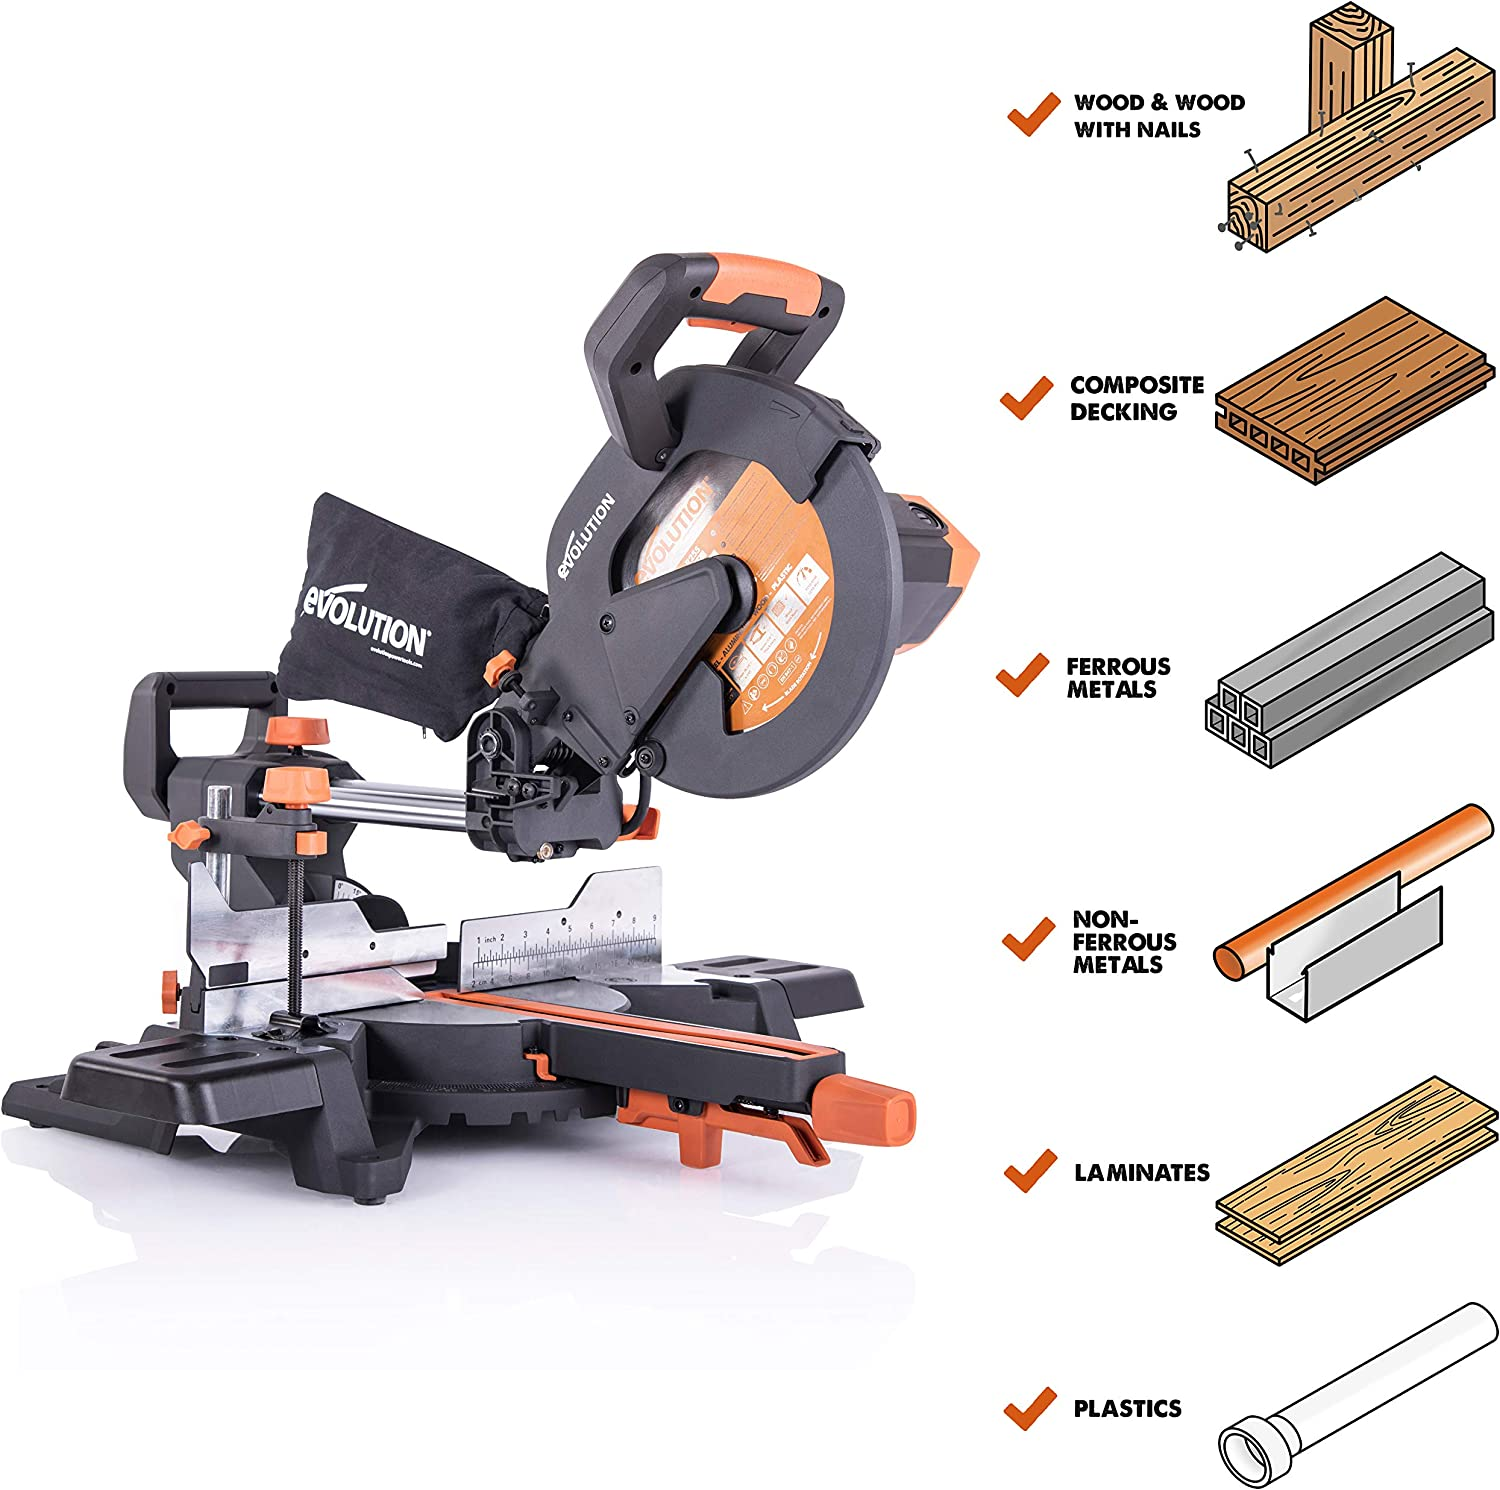 Evolution Power Tools R255SMS 10 Multi-Material Compound Sliding Miter Saw Plus